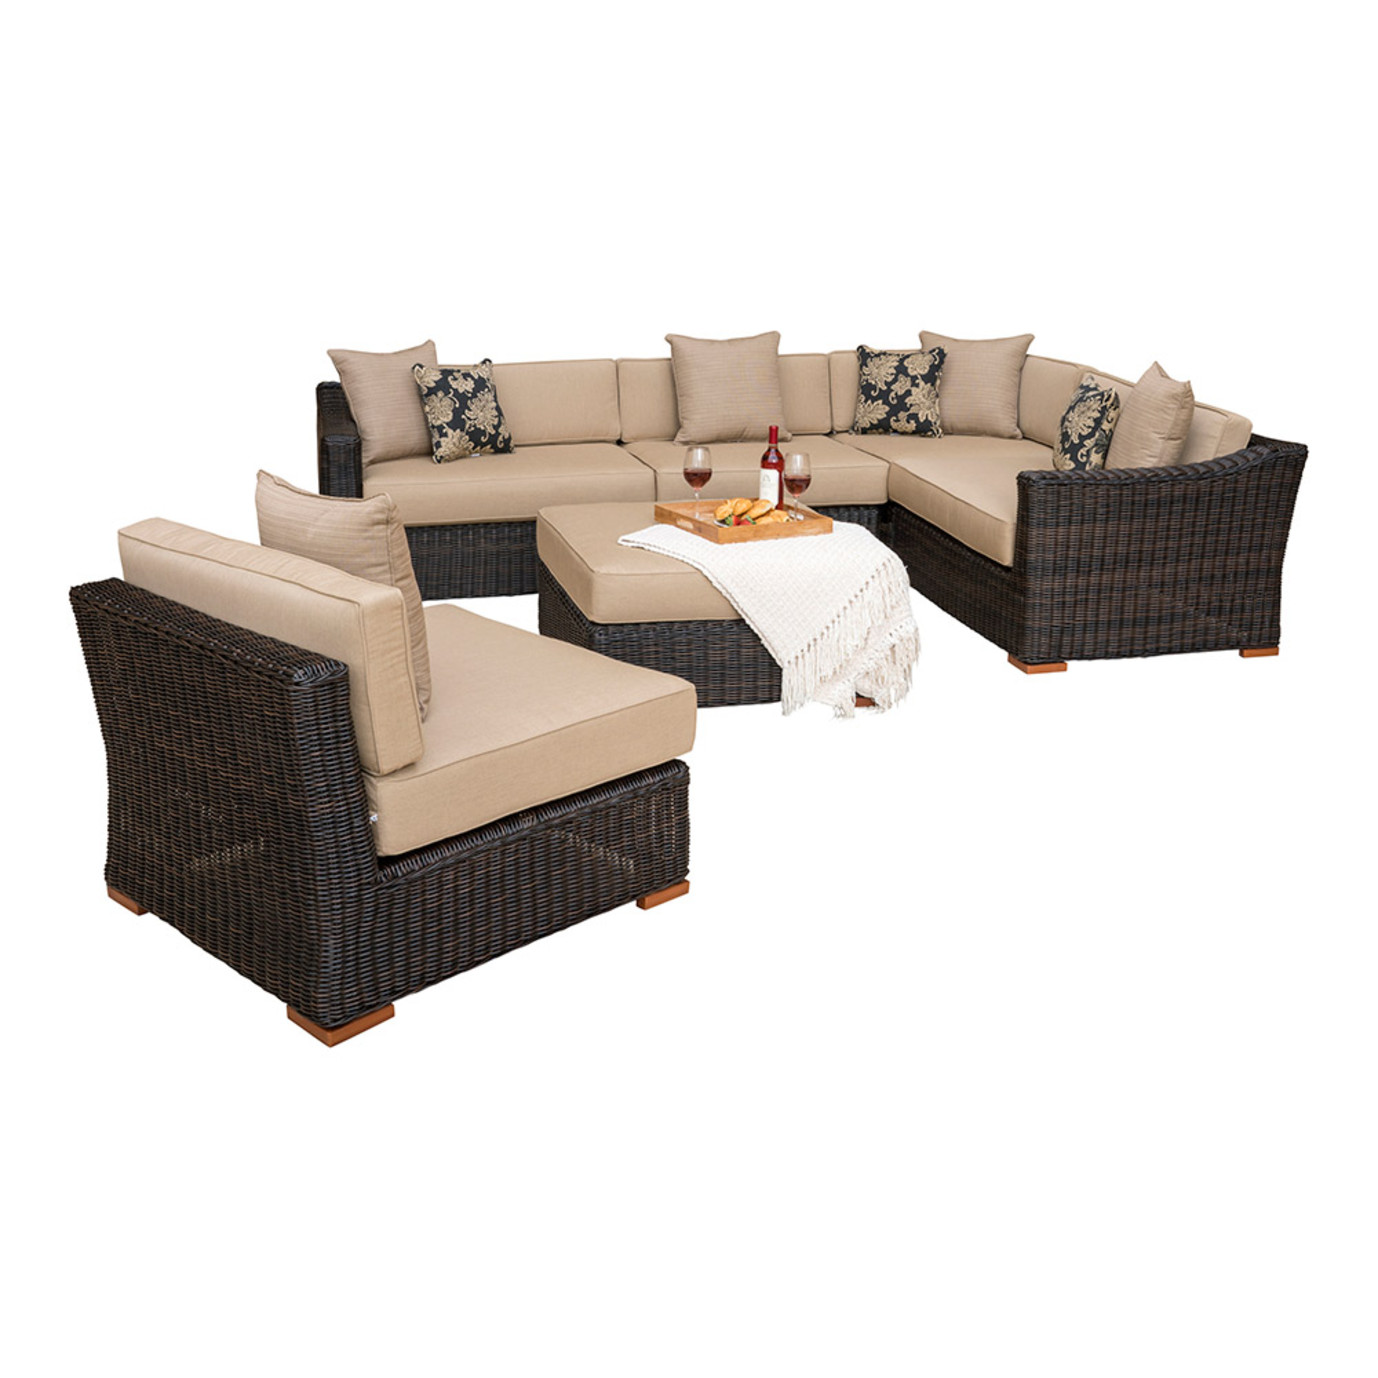 Resort™ 6pc Sectional Set with Ottoman - Espresso/Heather Beige